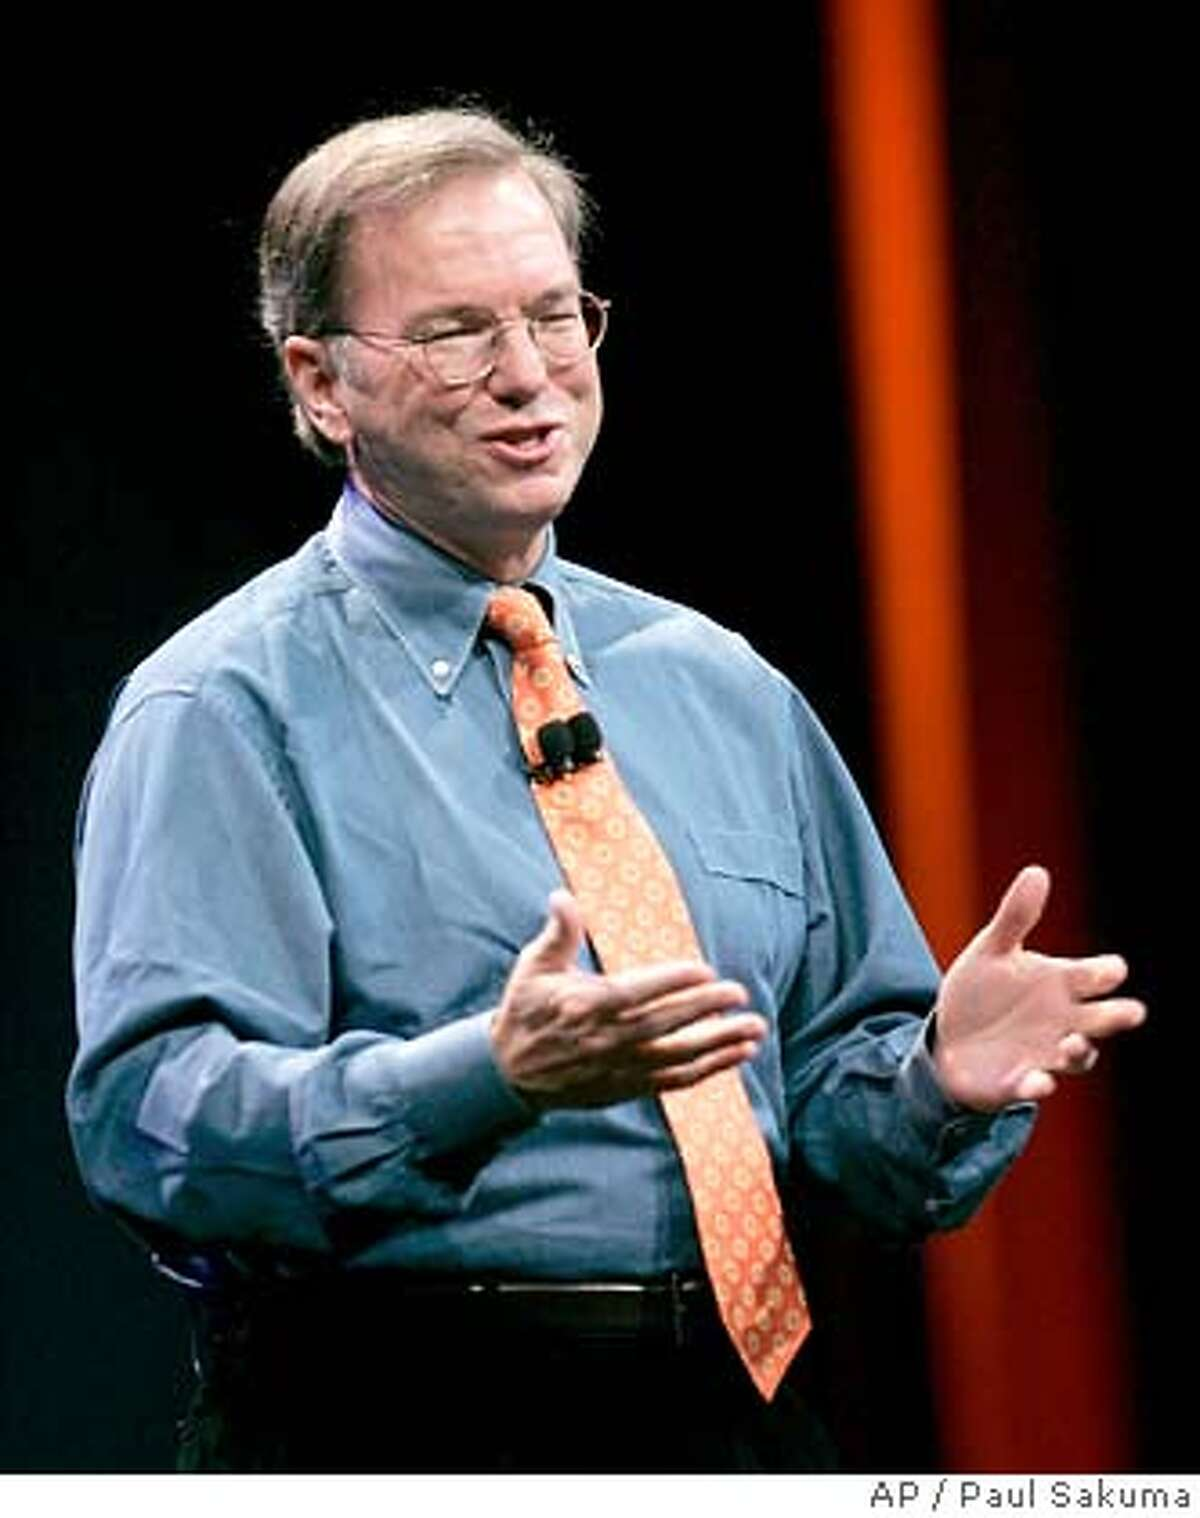 Google CEO Eric Schmidt gestures at MacWorld Conference & Expo in San Francisco, Tuesday, Jan. 9, 2007. Online search leader Google Inc. is expected to report another blowout quarter. (AP Photo/Paul Sakuma)